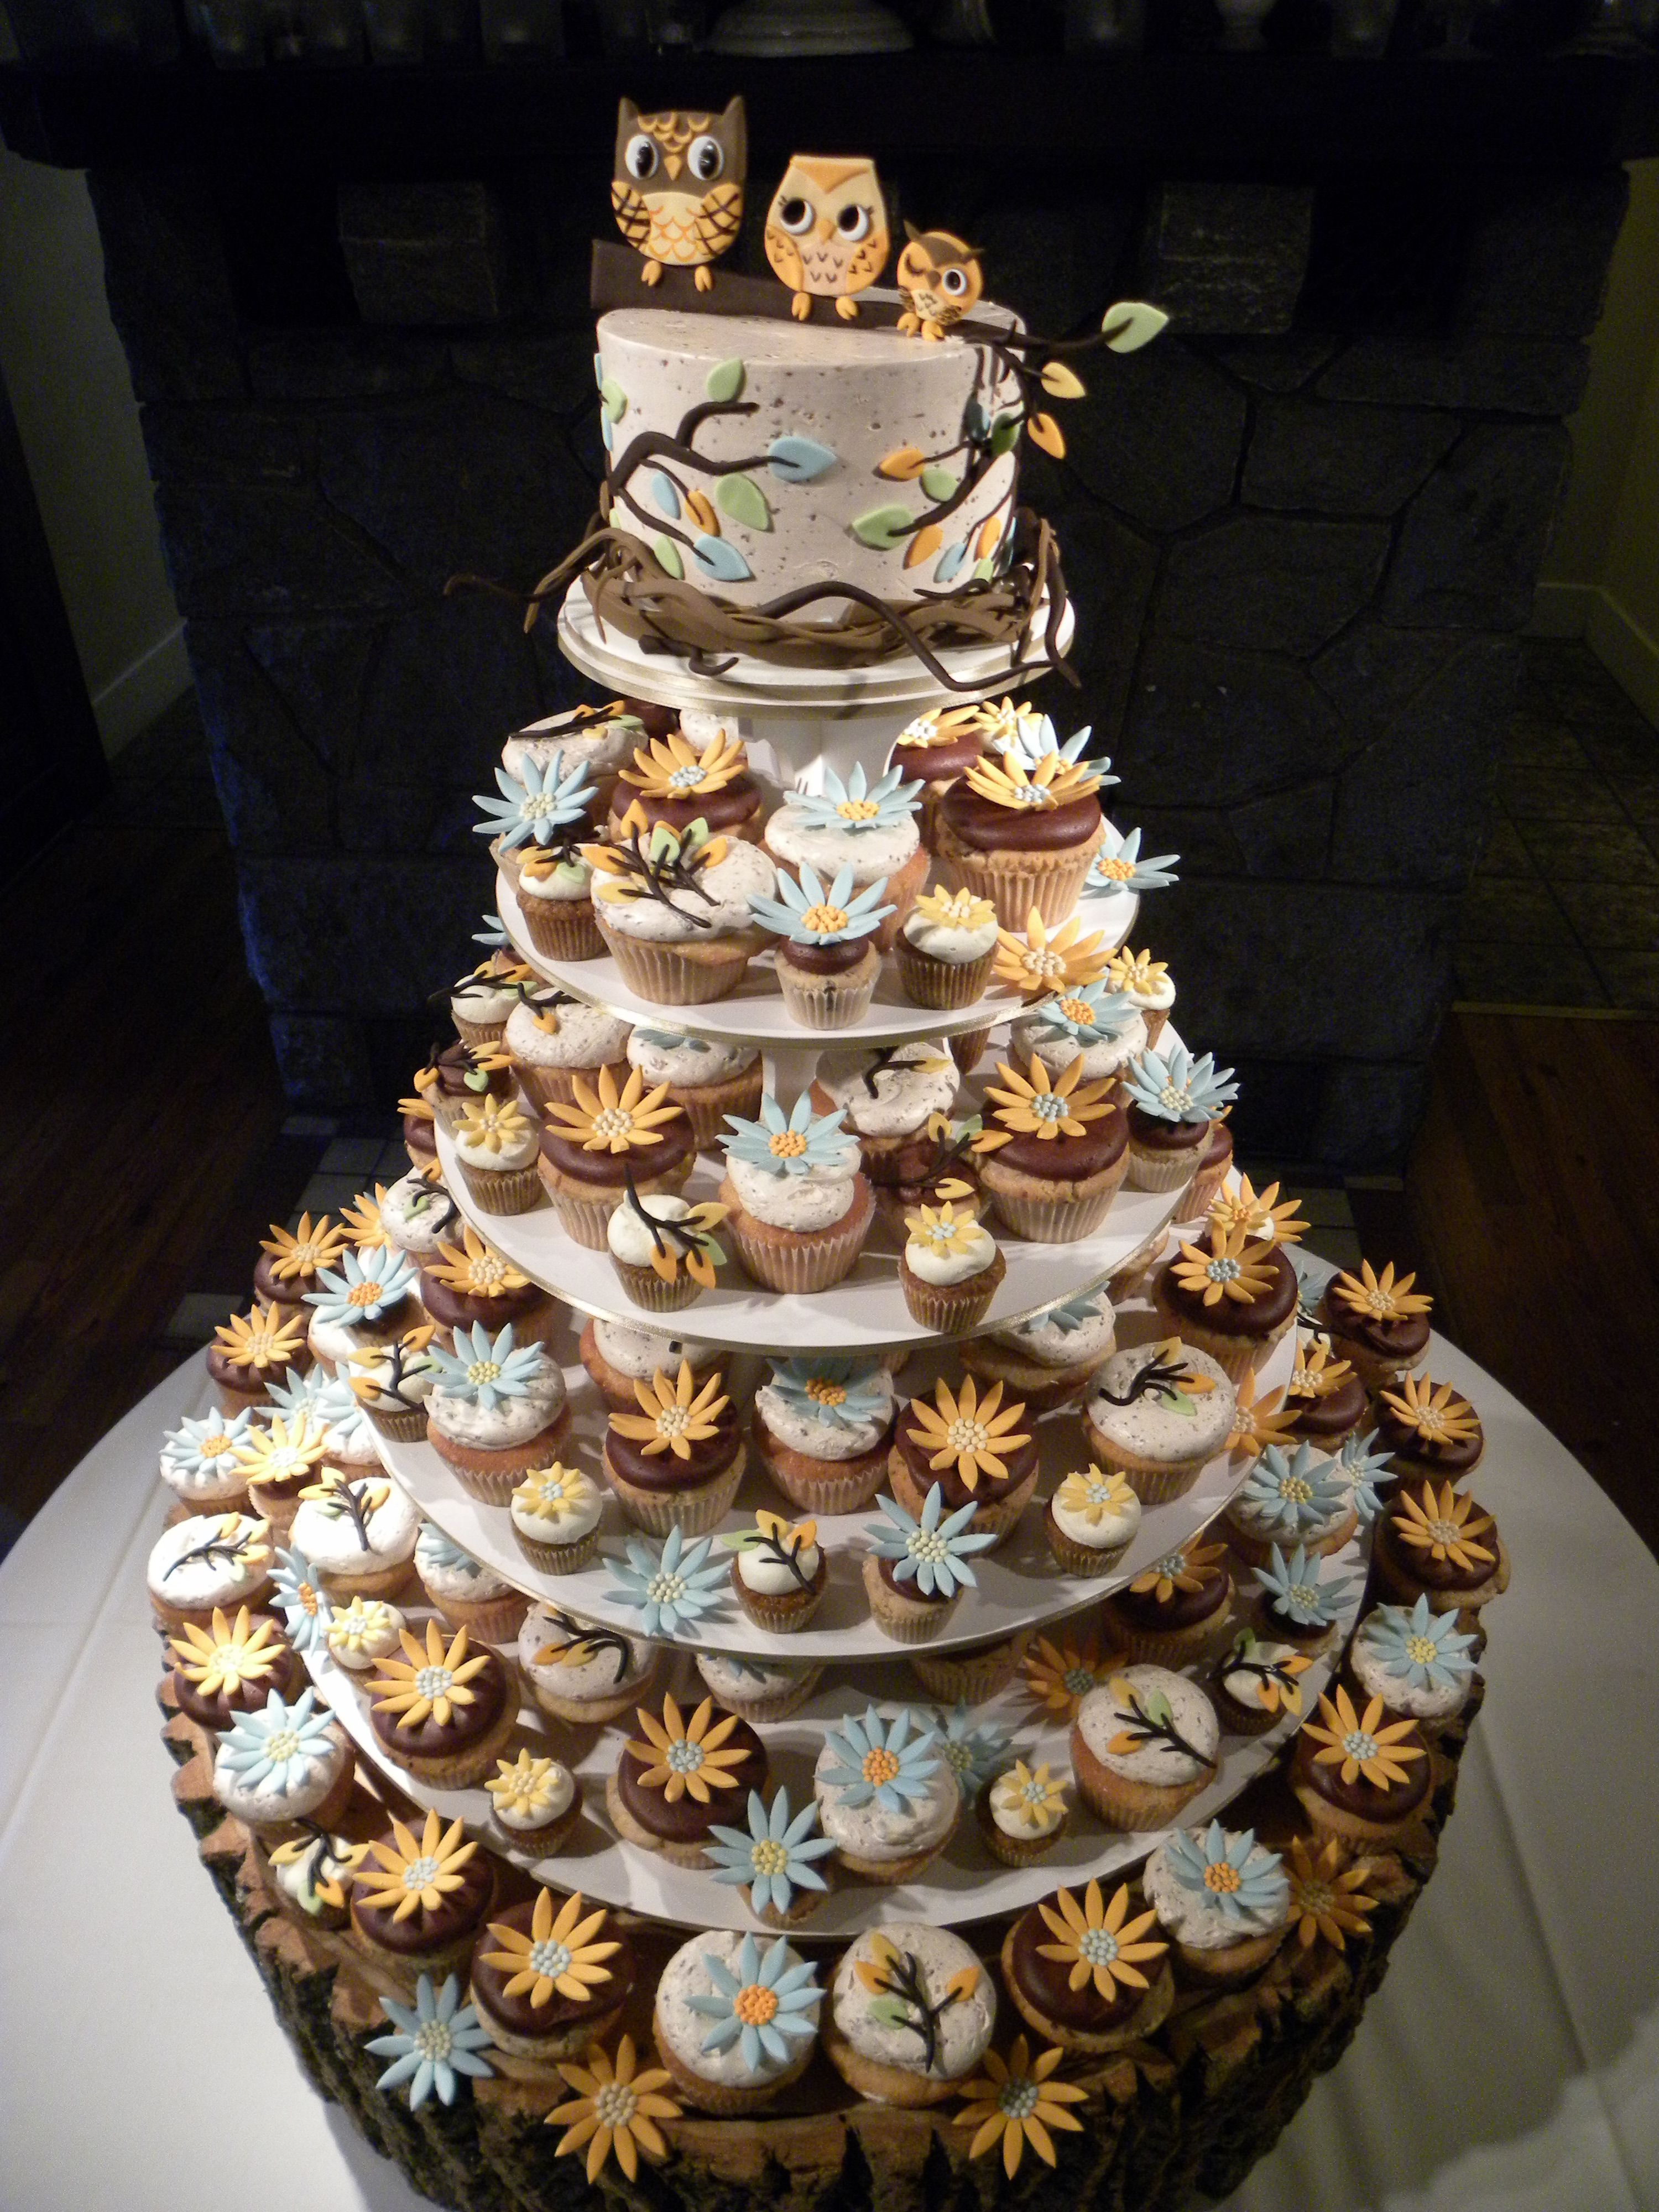 Oh My Goodness Look At The Cupcake Wedding Cake With The